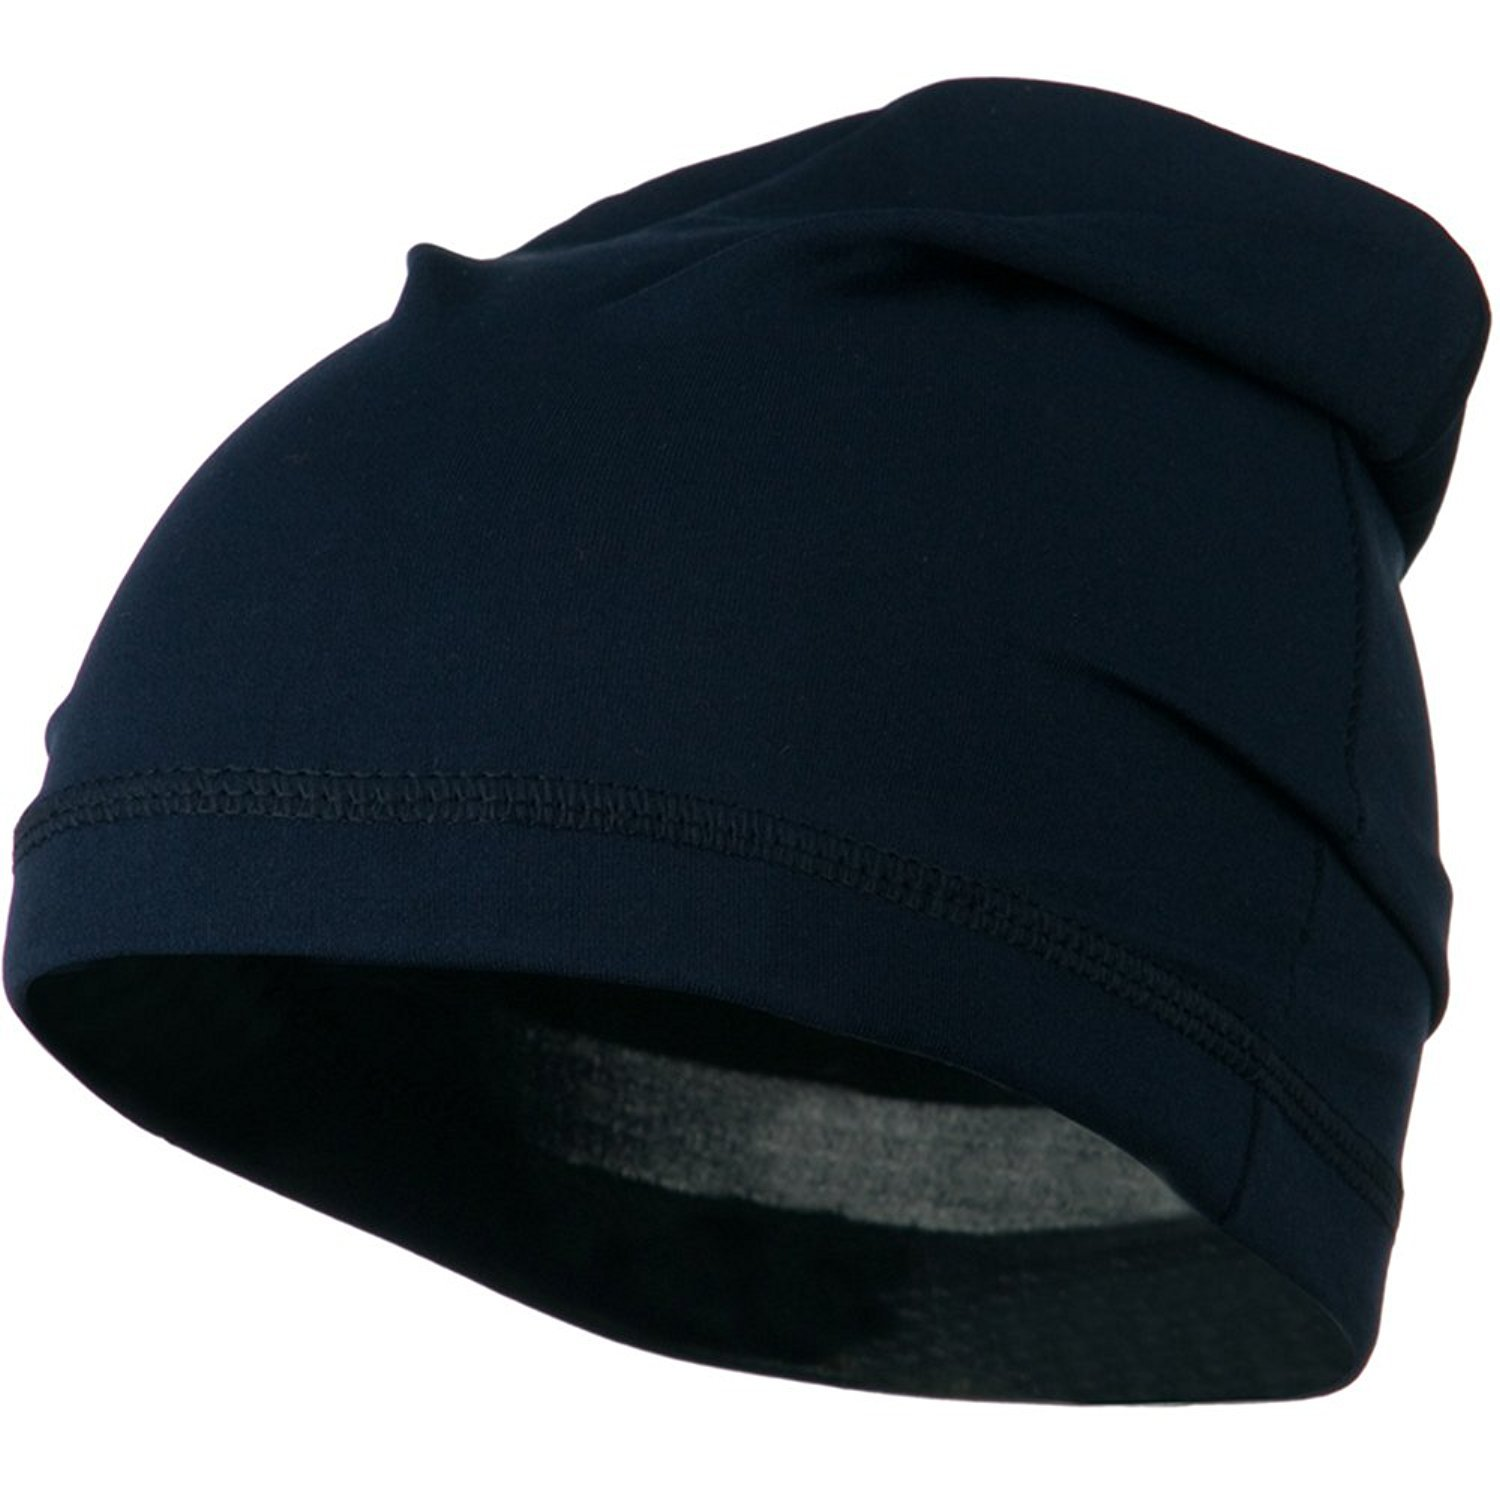 Bargain Real Fit Spandex Cap Navy - Challenge the lowest price of Japan ☆ OSFM